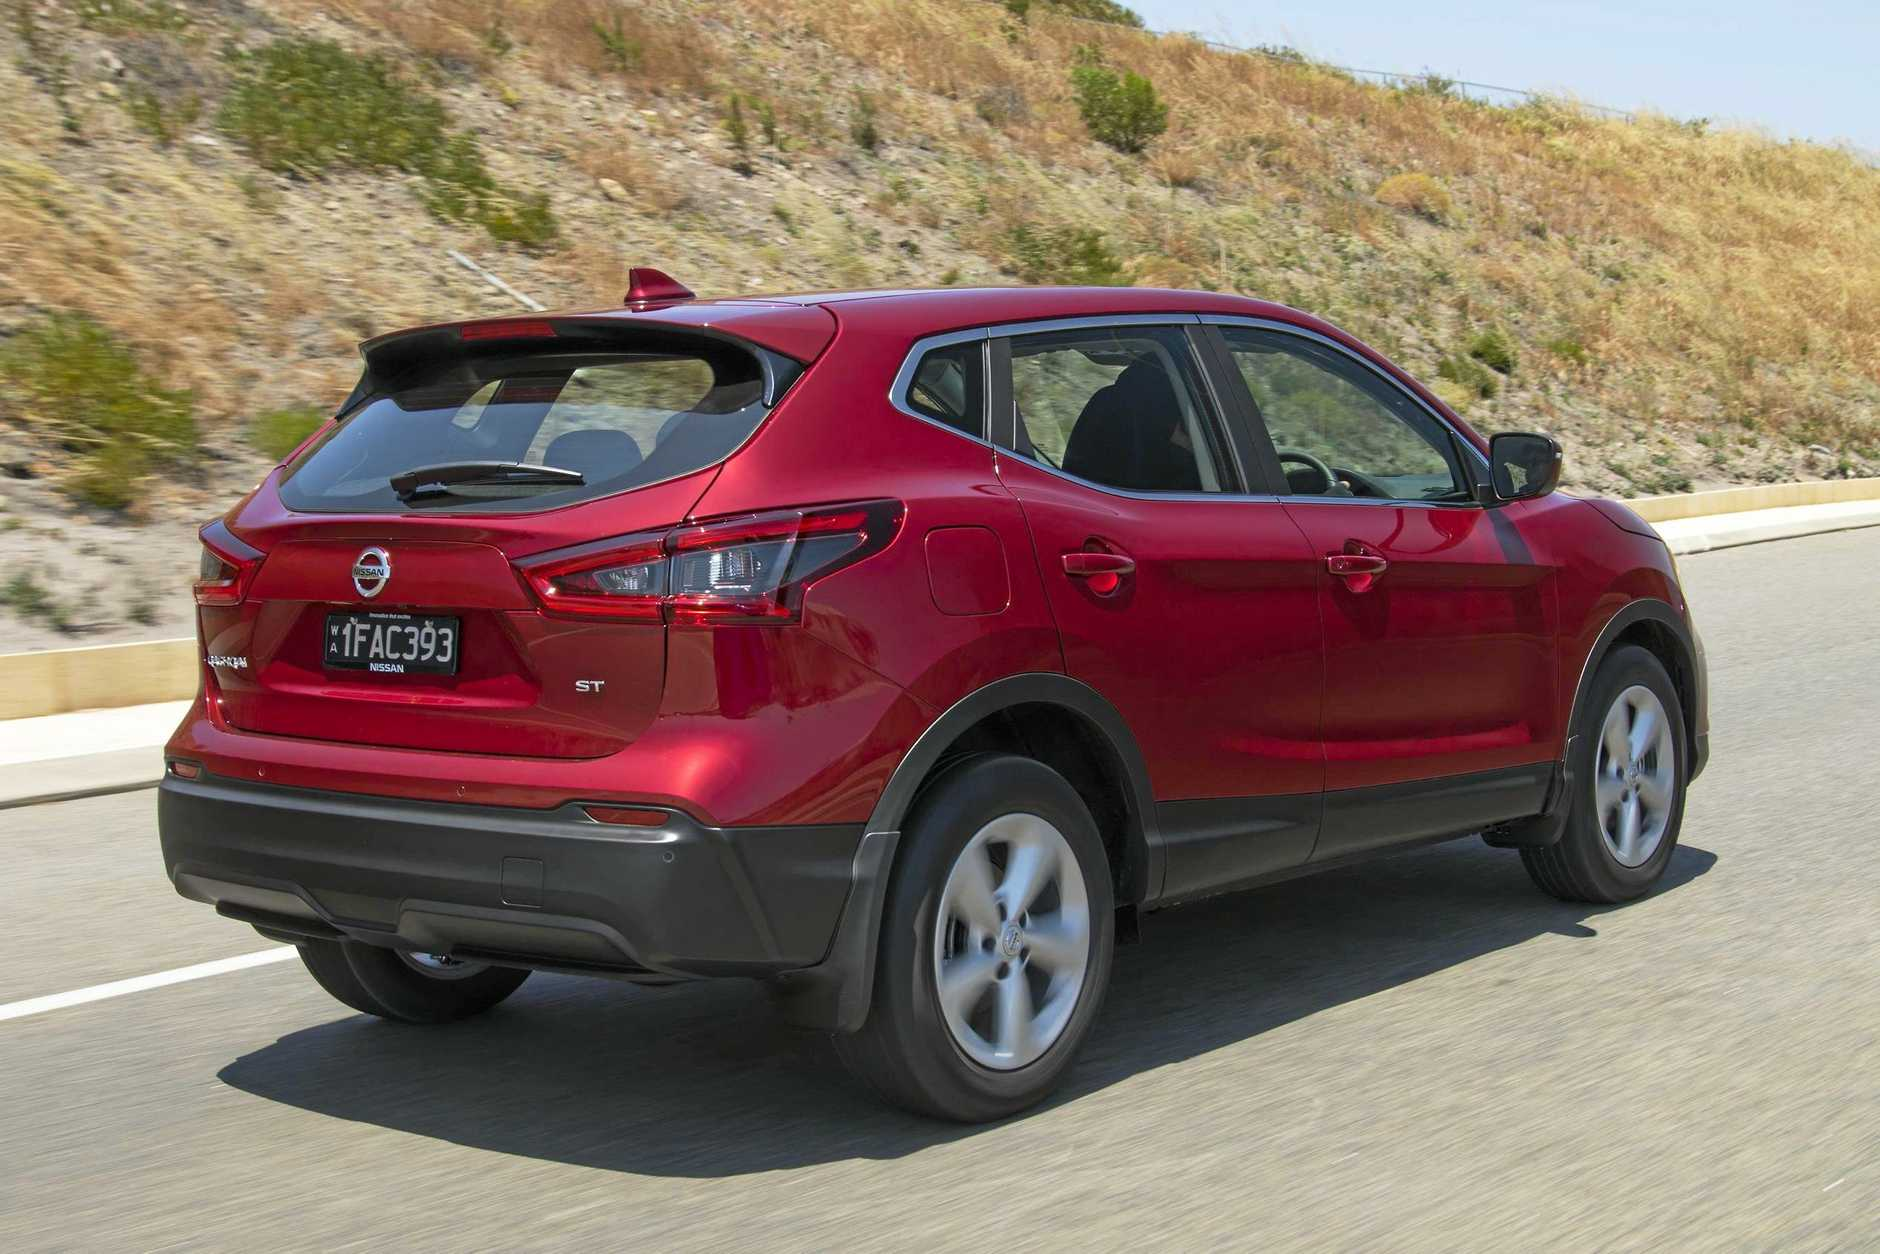 The Nissan ST is the entry-level offering in the Qashqai range.